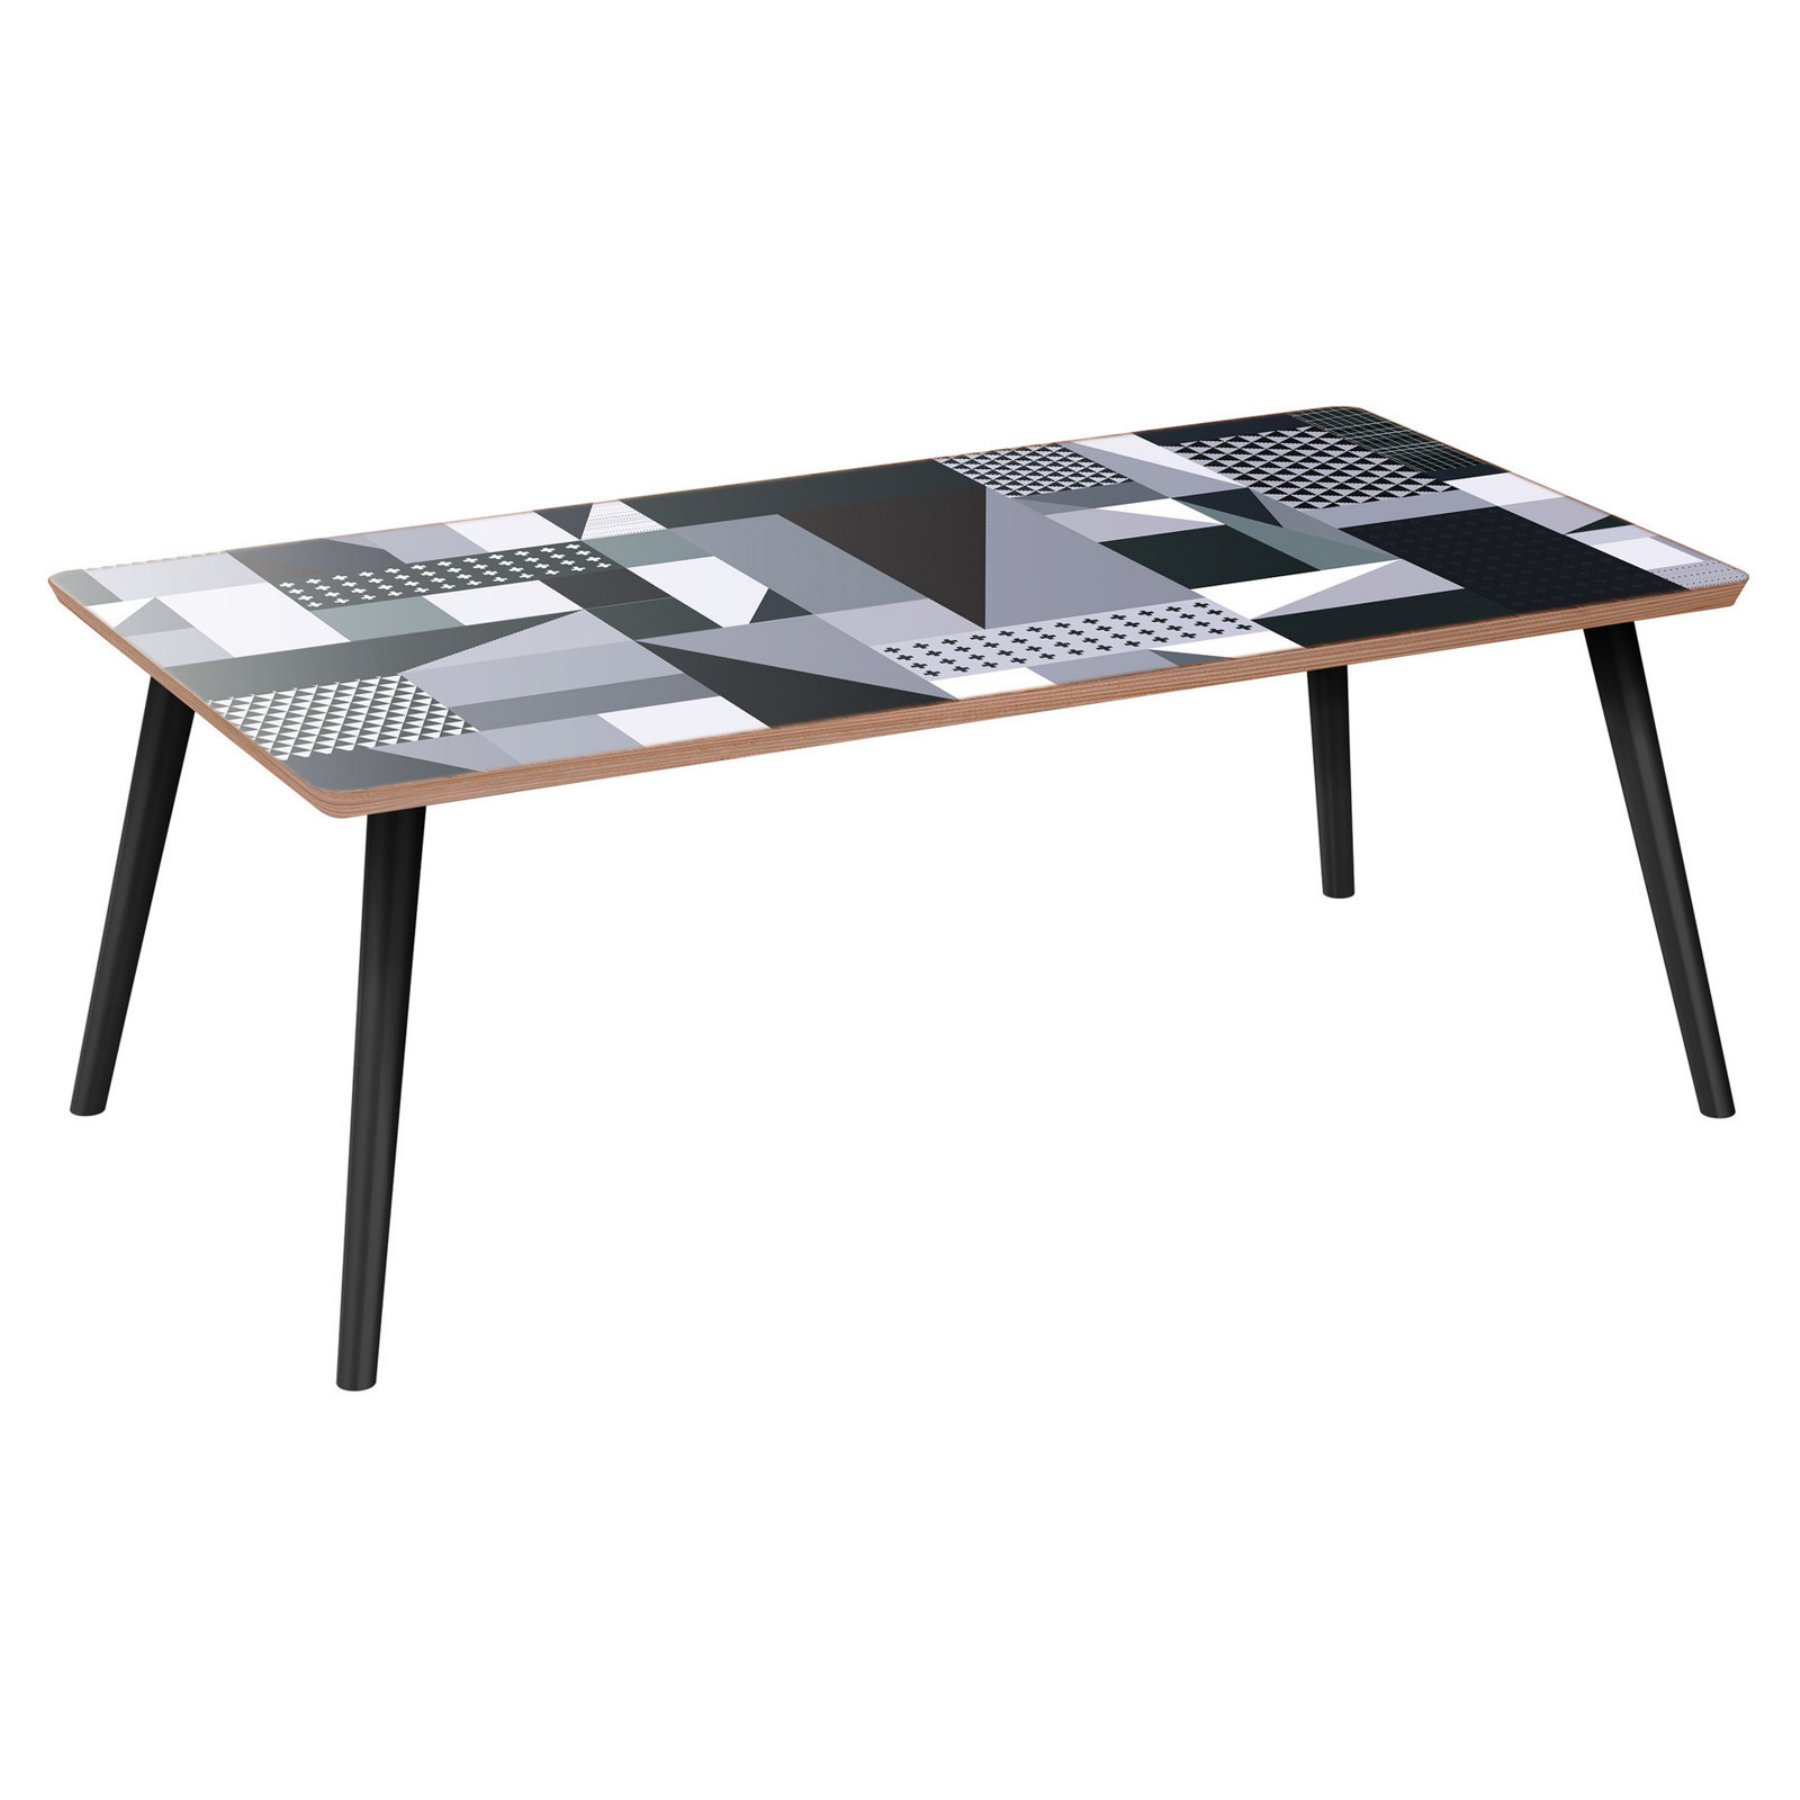 Nyekoncept Brixton Flare Grayscale Patchwork Coffee Table  12034102